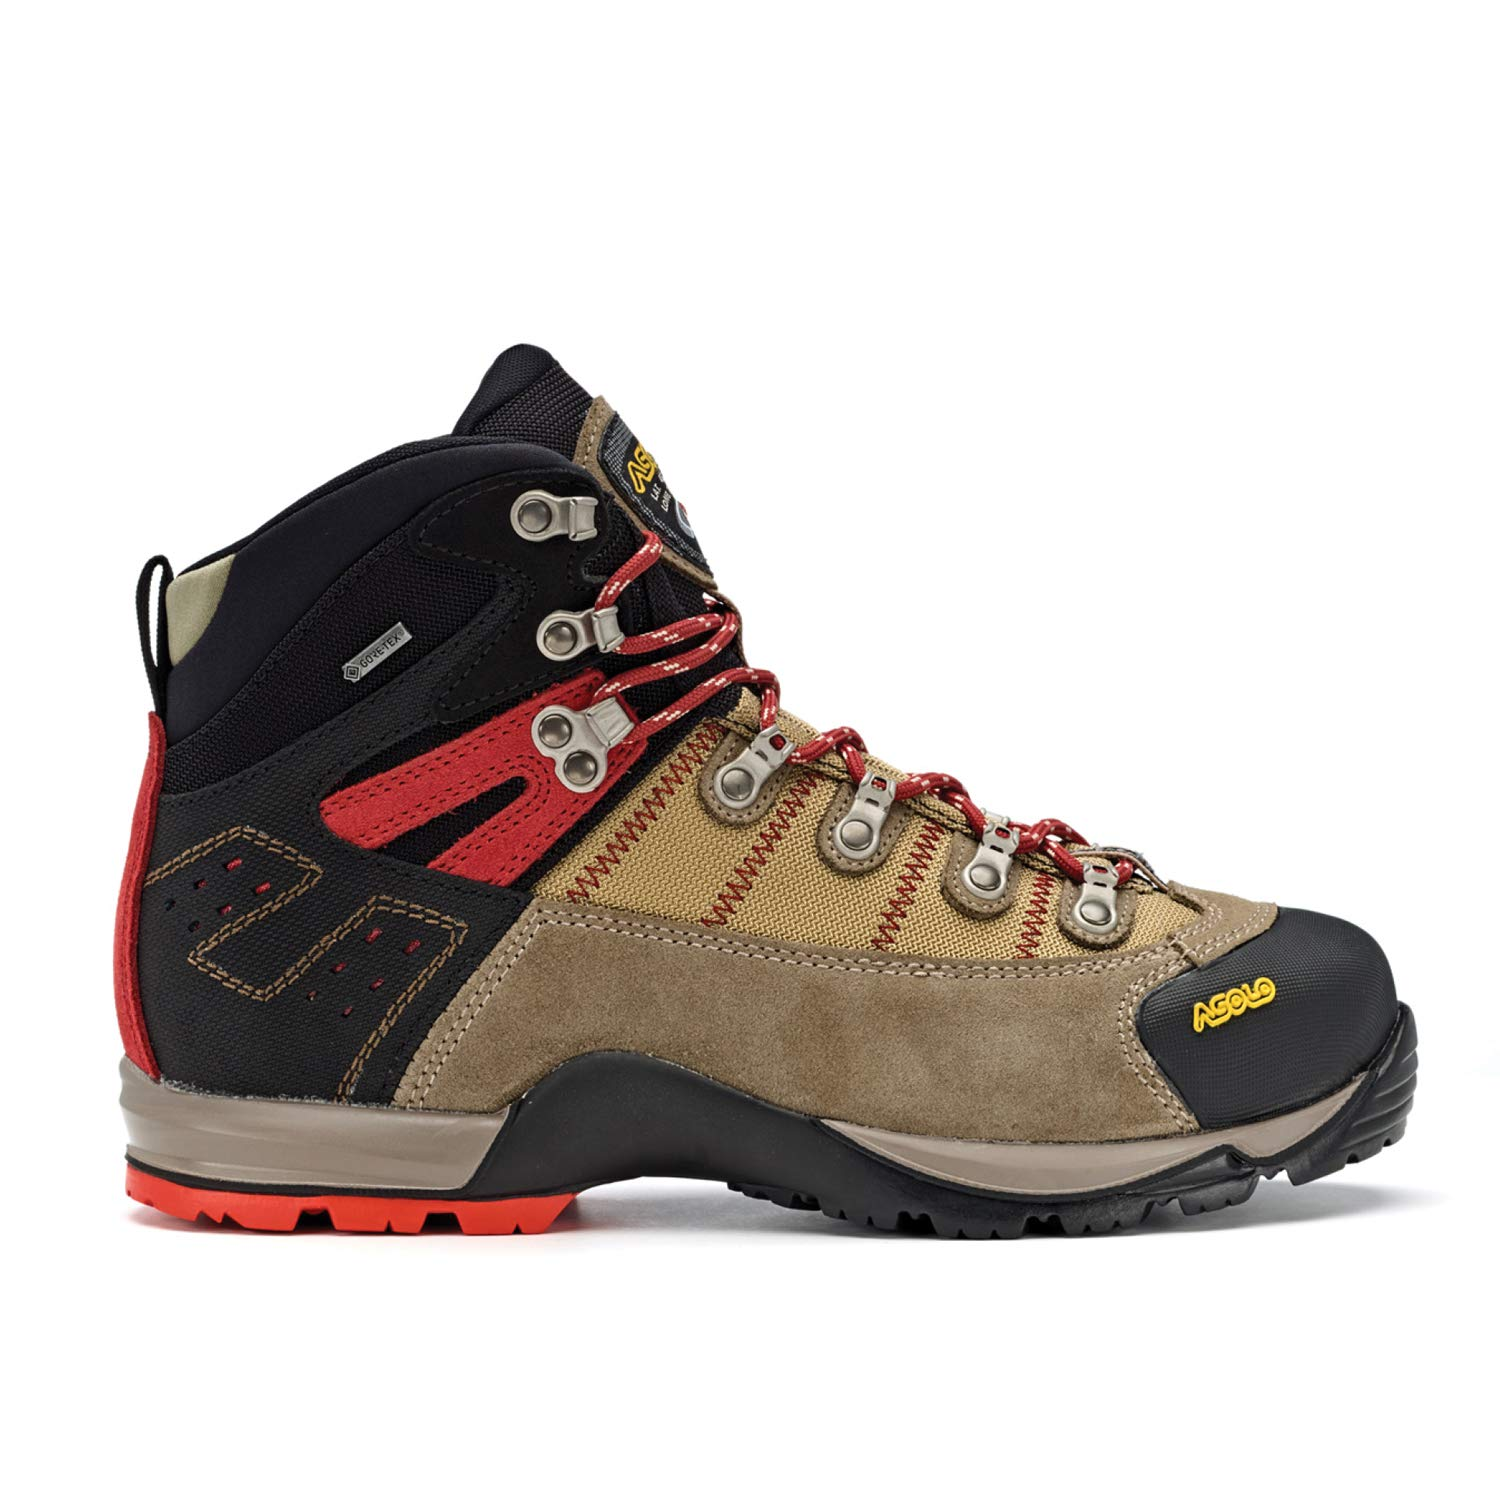 Asolo Fugitive GTX Men's Waterproof Hiking Boot for Light Hikers and Trekkers by Asolo